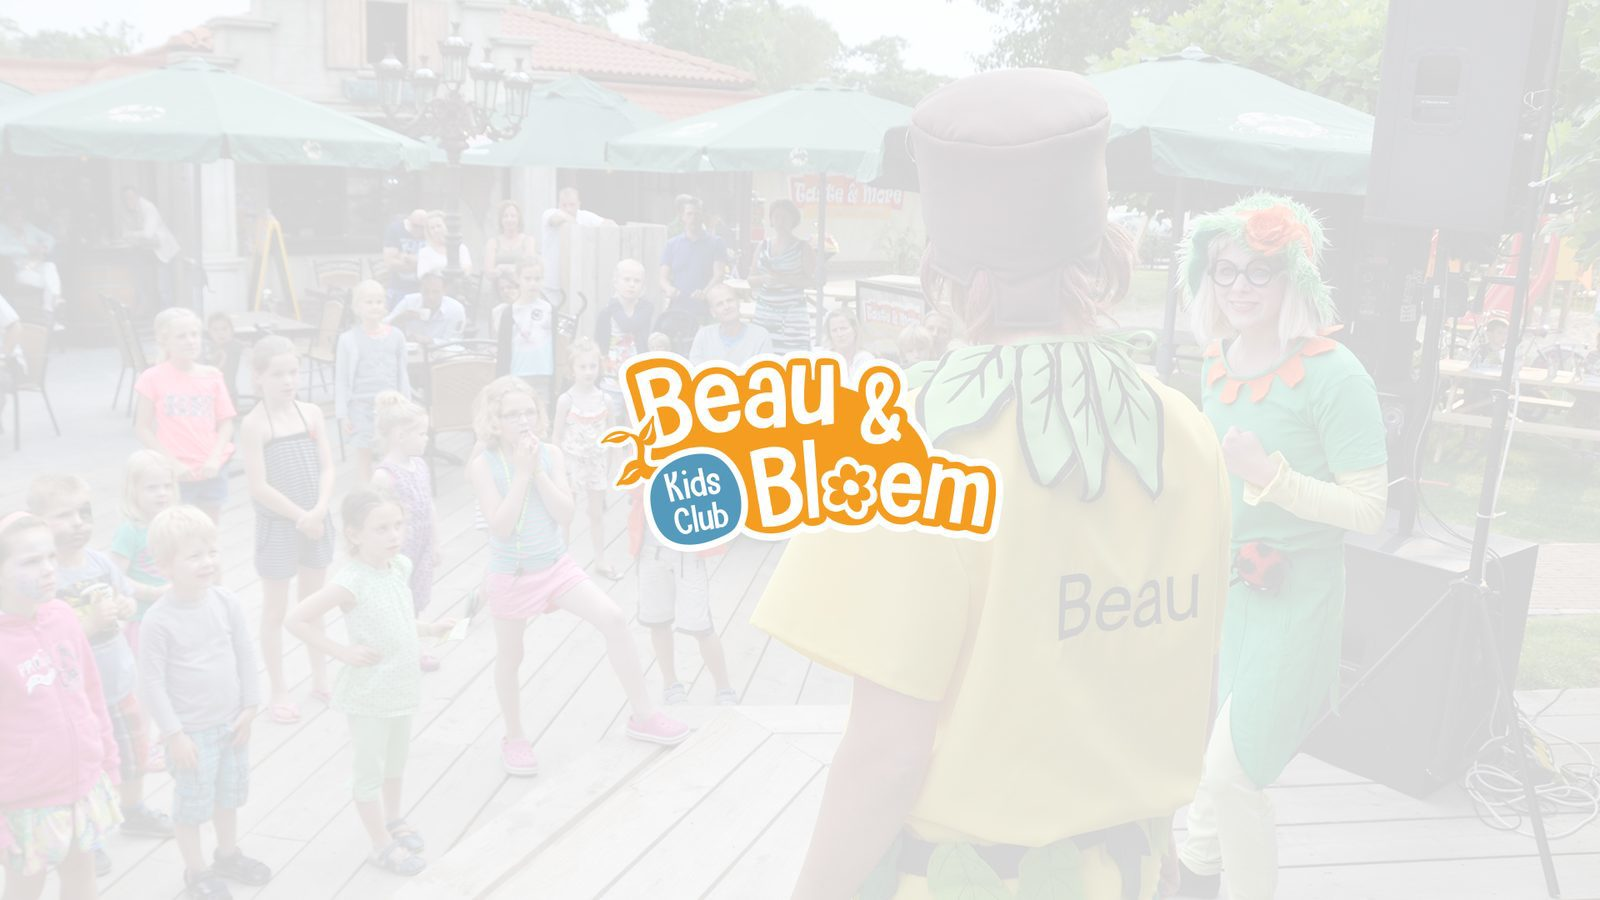 Beau en Bloem Kids Club